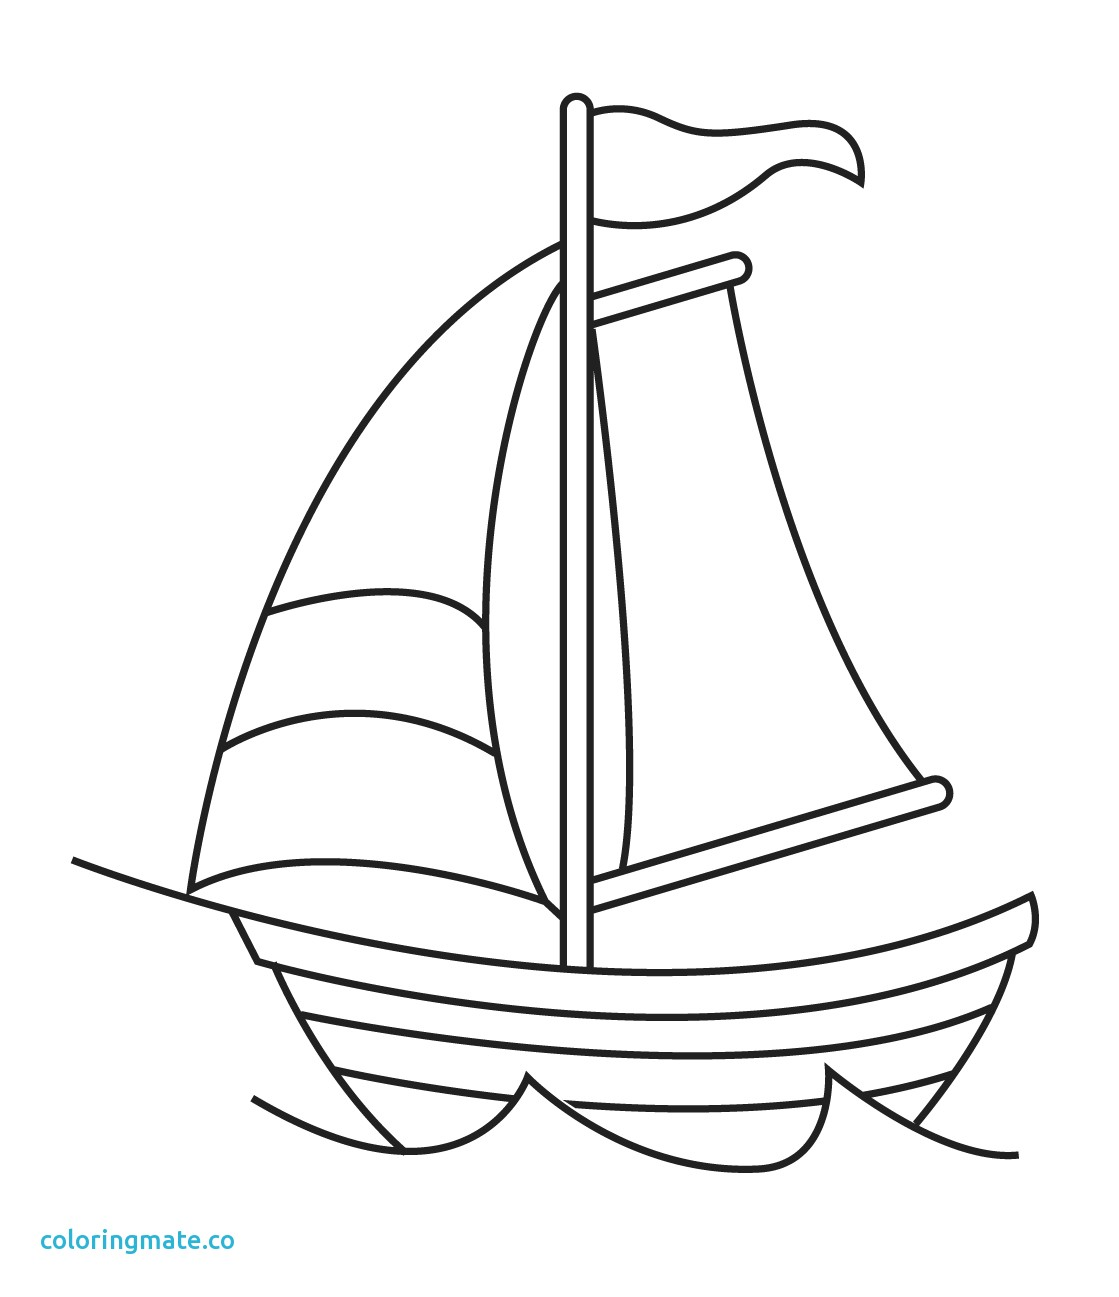 Boat On Water Drawing At Getdrawings